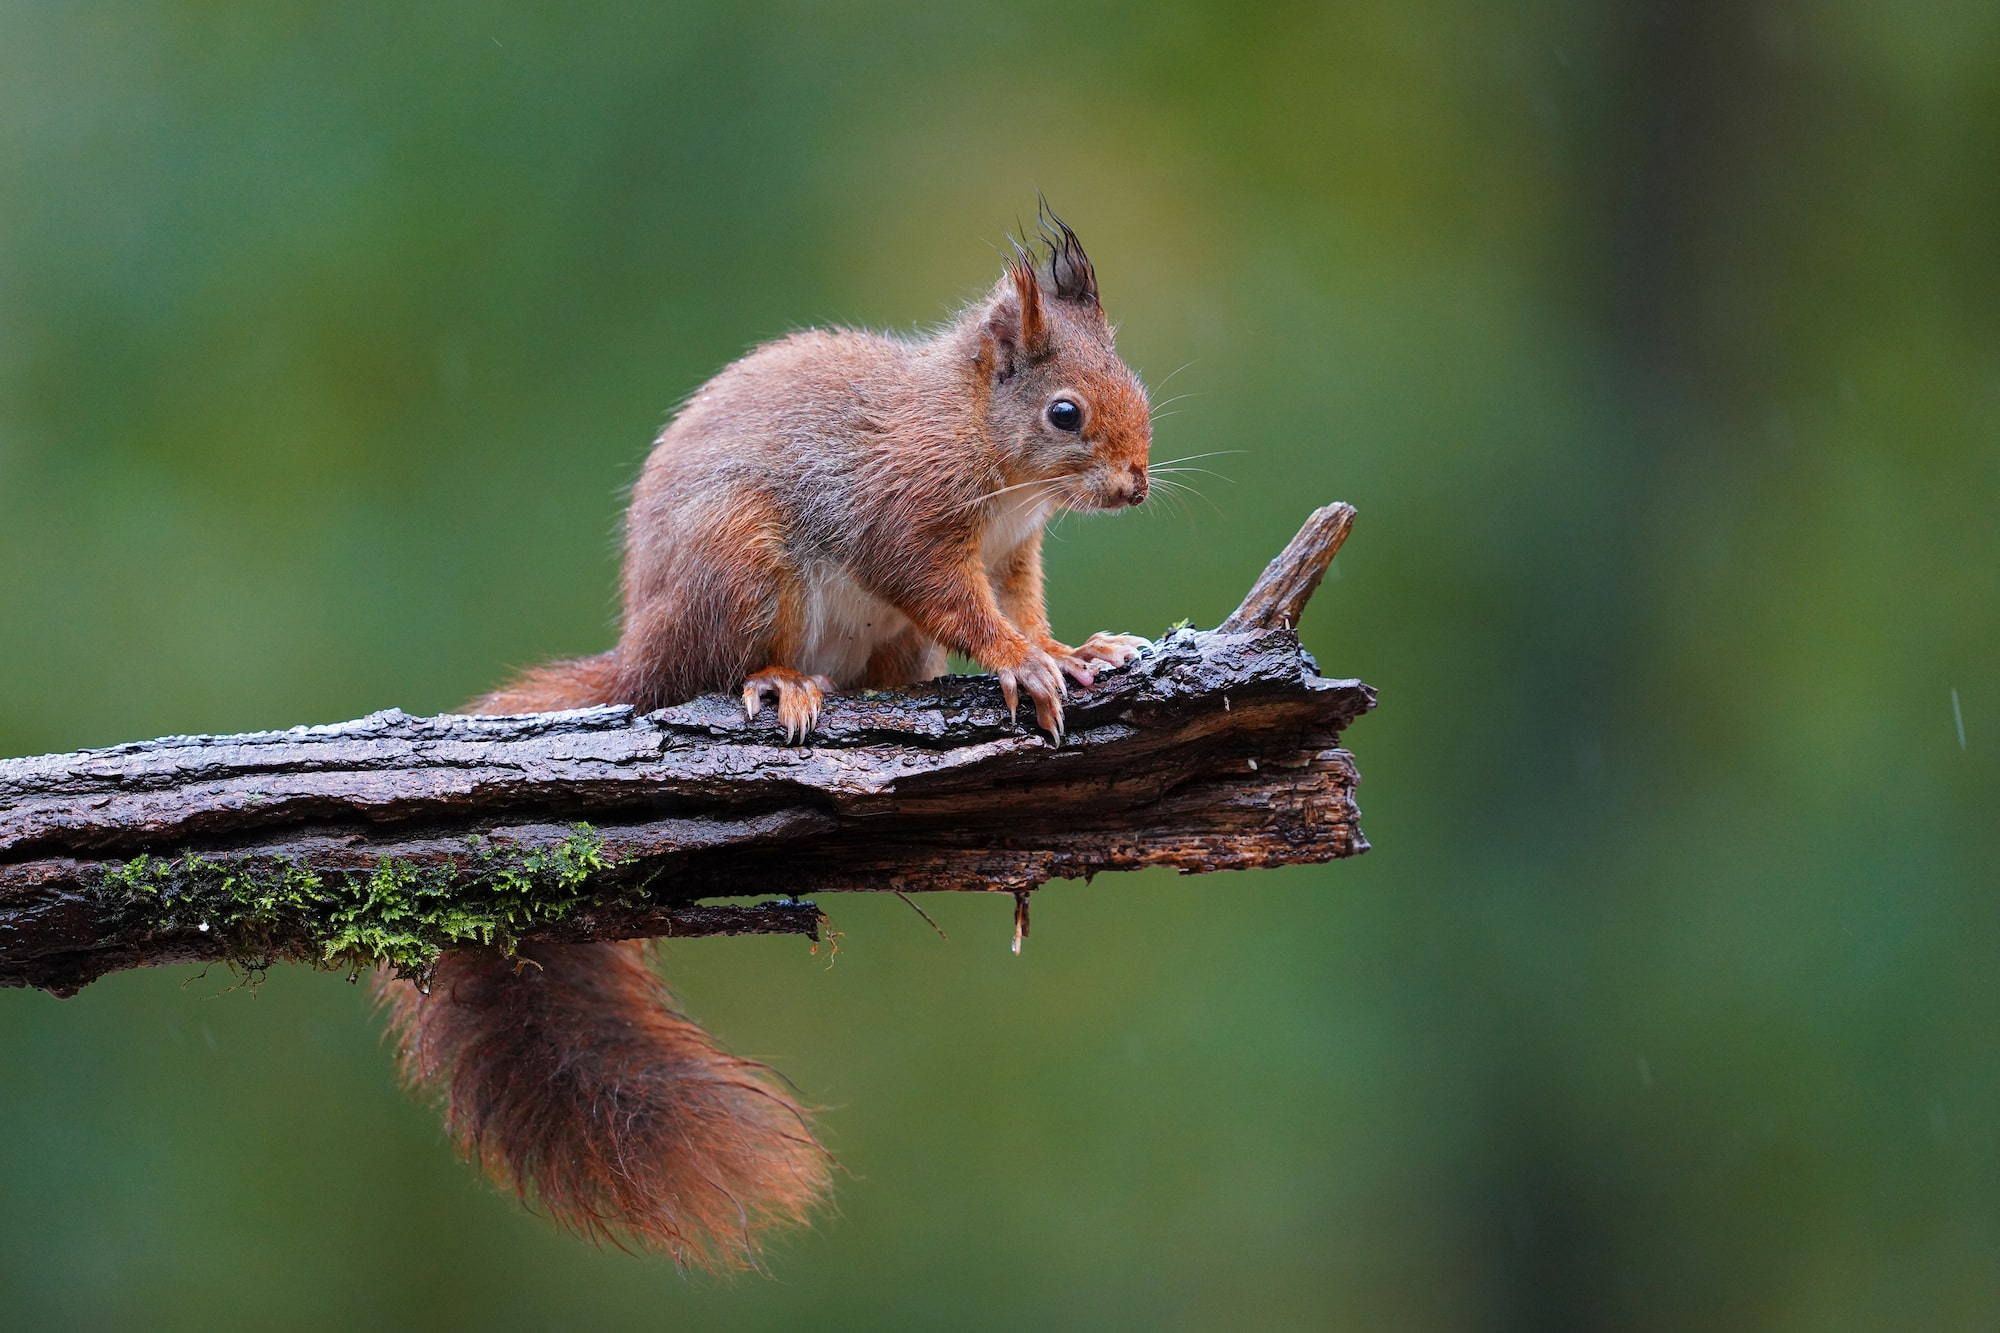 gustav kiburg sony alpha 7r4 squirrel on a wet branch